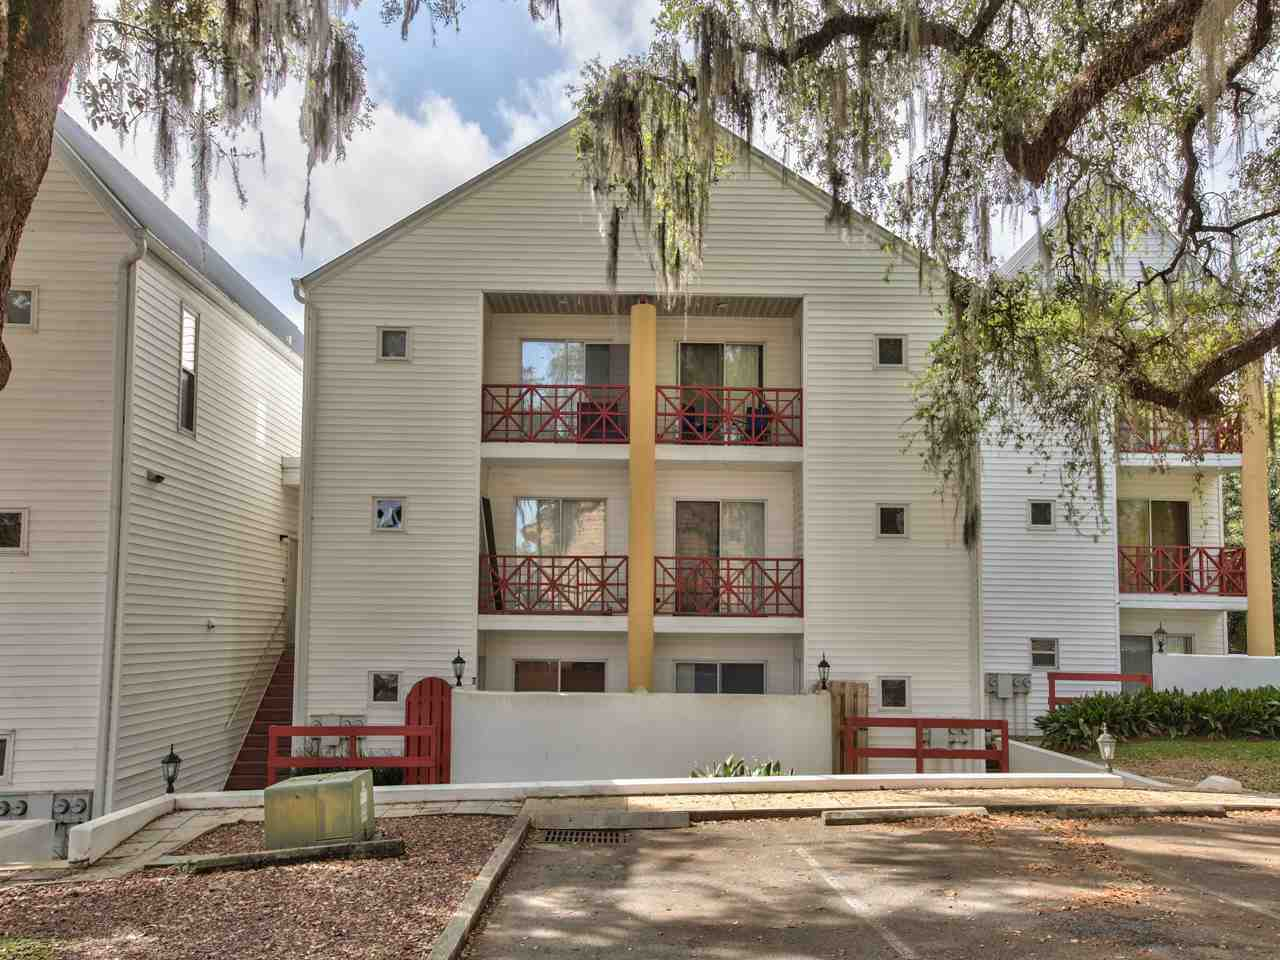 Appointments made thru LA- leased thru 4/30/21. Clean ground floor student condo in highly sought-after complex in the shadow of Doak Stadium! Condos in this complex never last long! Newer kitchen appliances. Use 2 parking permits or walk to the game, class, bus stops, restaurants, & College Town. Low maintenance, 2 bedrooms, 2 full baths, freshly painted, covered patios and full-size washer/dryer. HOA fees include exterior bldg and common area maintenance and insurance, trash, water, and sewer. Gorgeous 100-year oak trees adorn this FSU gem. Buyer to verify all measurements. Mostly owner occupied. Don't miss out on this INVESTMENT!